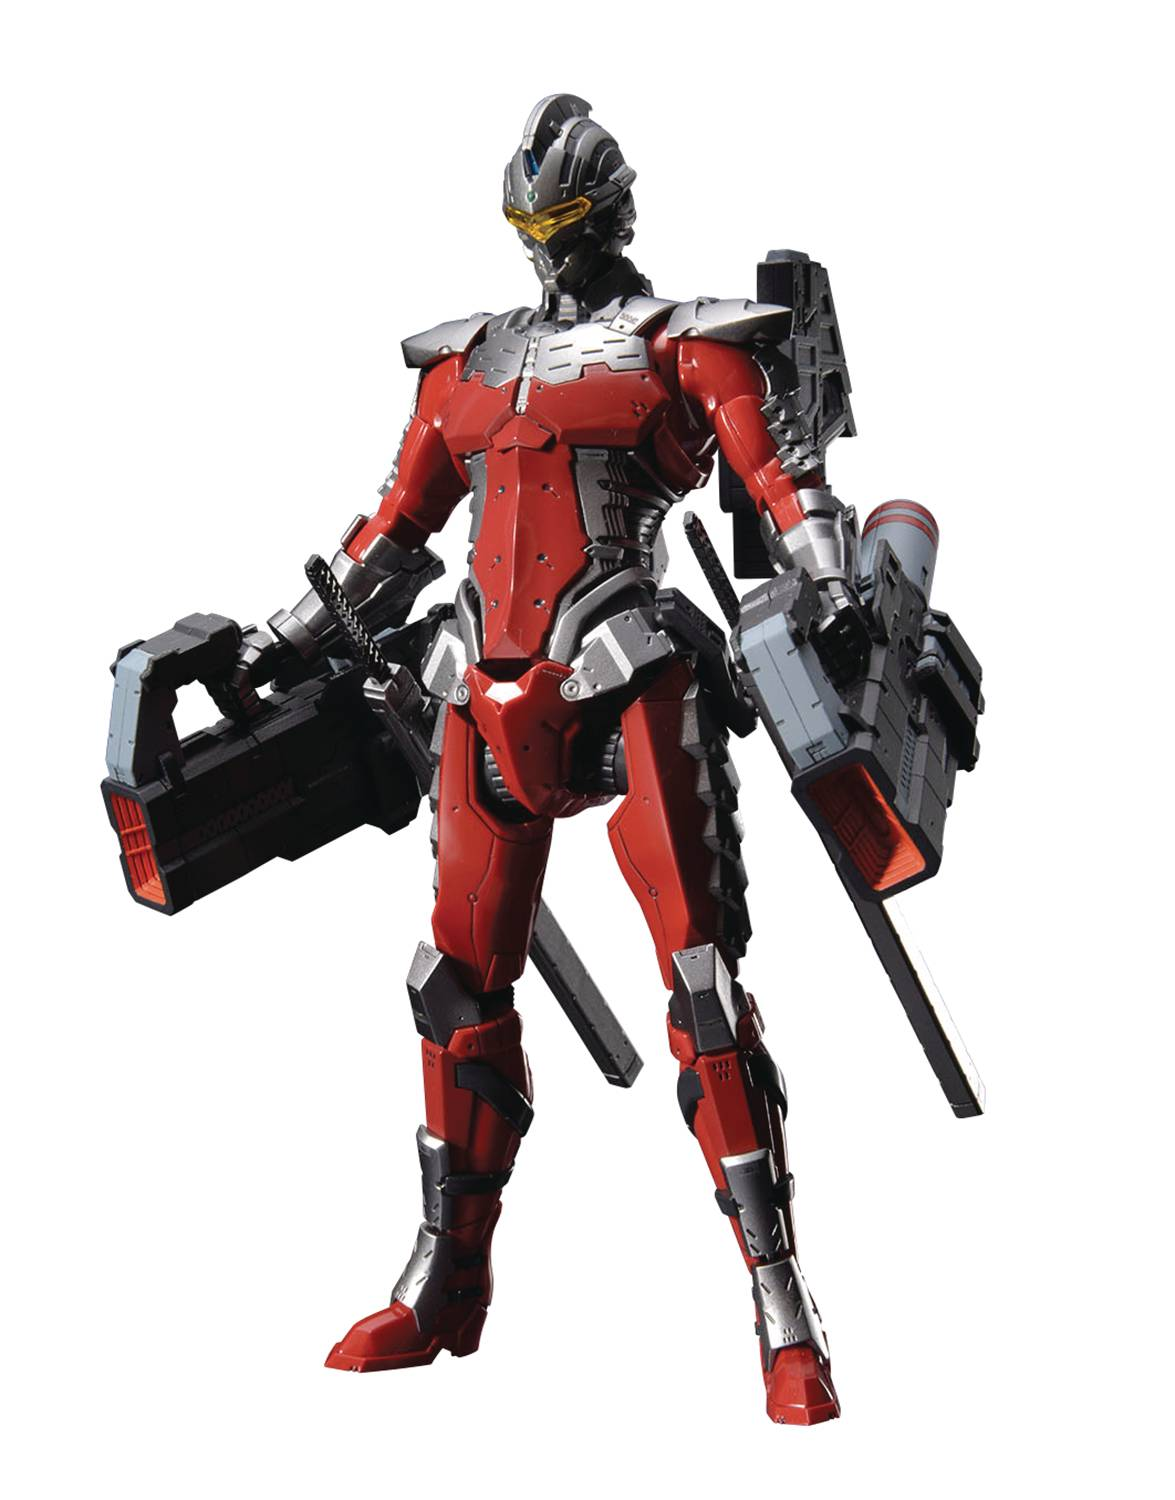 ULTRAMAN SUIT VER 7.3 FULLY ARMED FIG-RISE STD MDL KIT